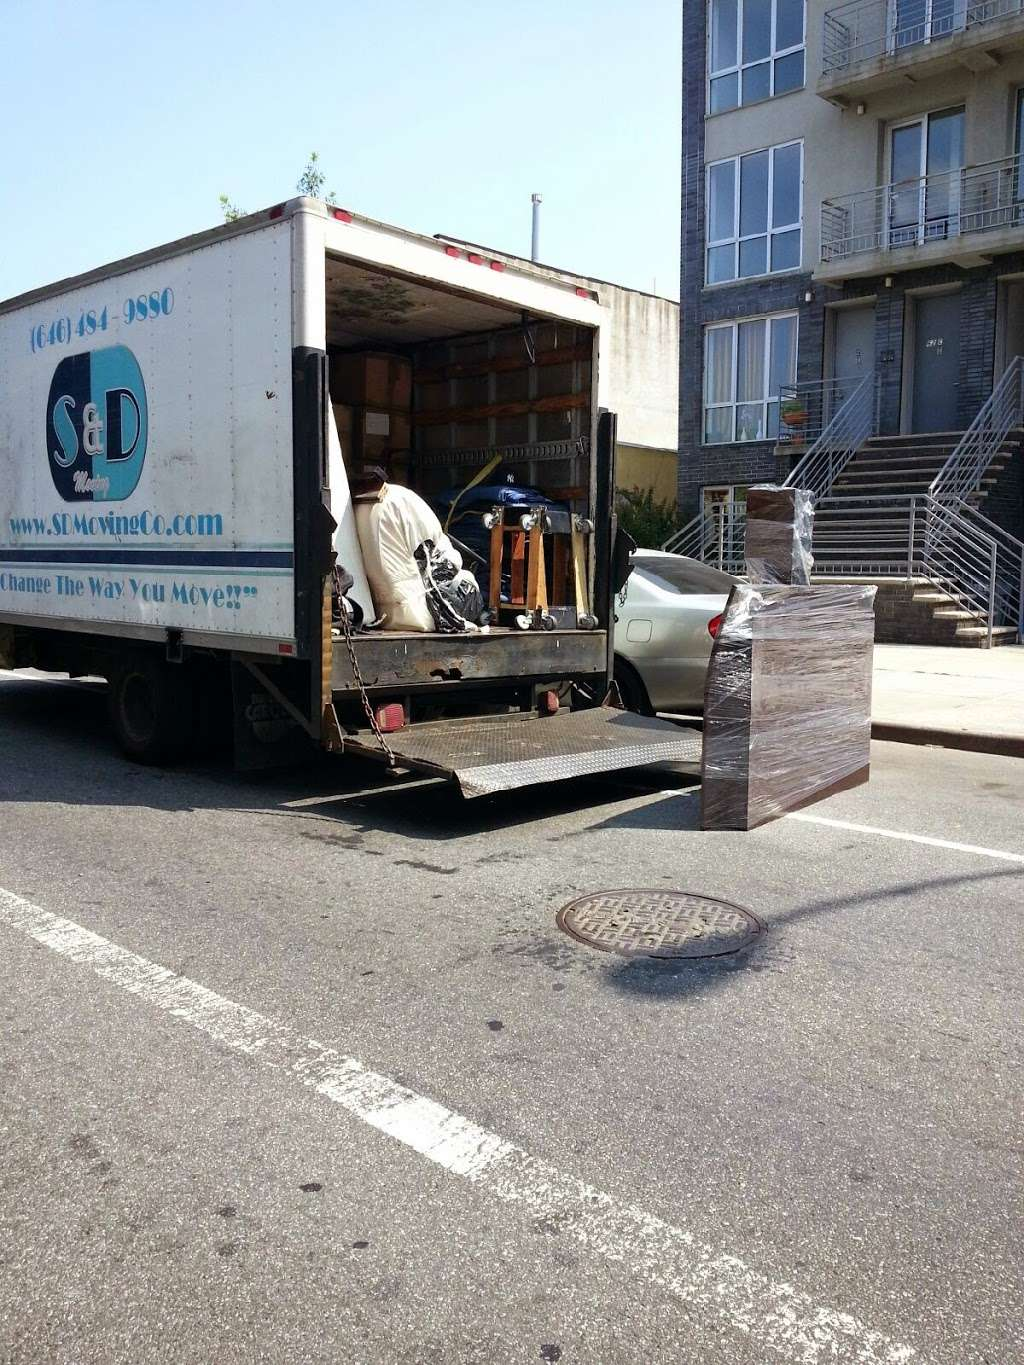 S&D Moving and Storage Co. - moving company  | Photo 6 of 10 | Address: 400 E Gun Hill Rd, Bronx, NY 10467, USA | Phone: (646) 494-0232